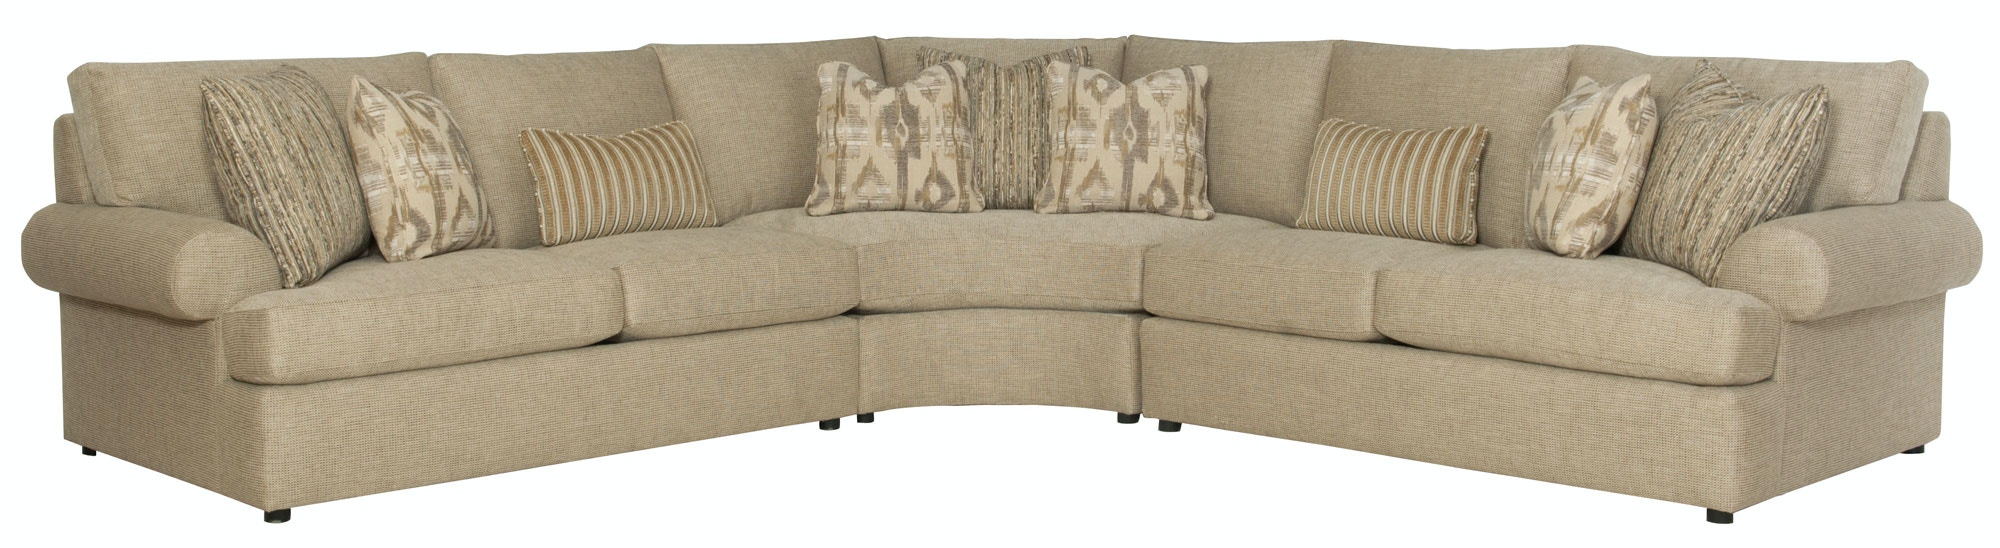 Bernhardt franco sectional bernhardt sectional sofa neat for Albany st germain sectional sofa chaise